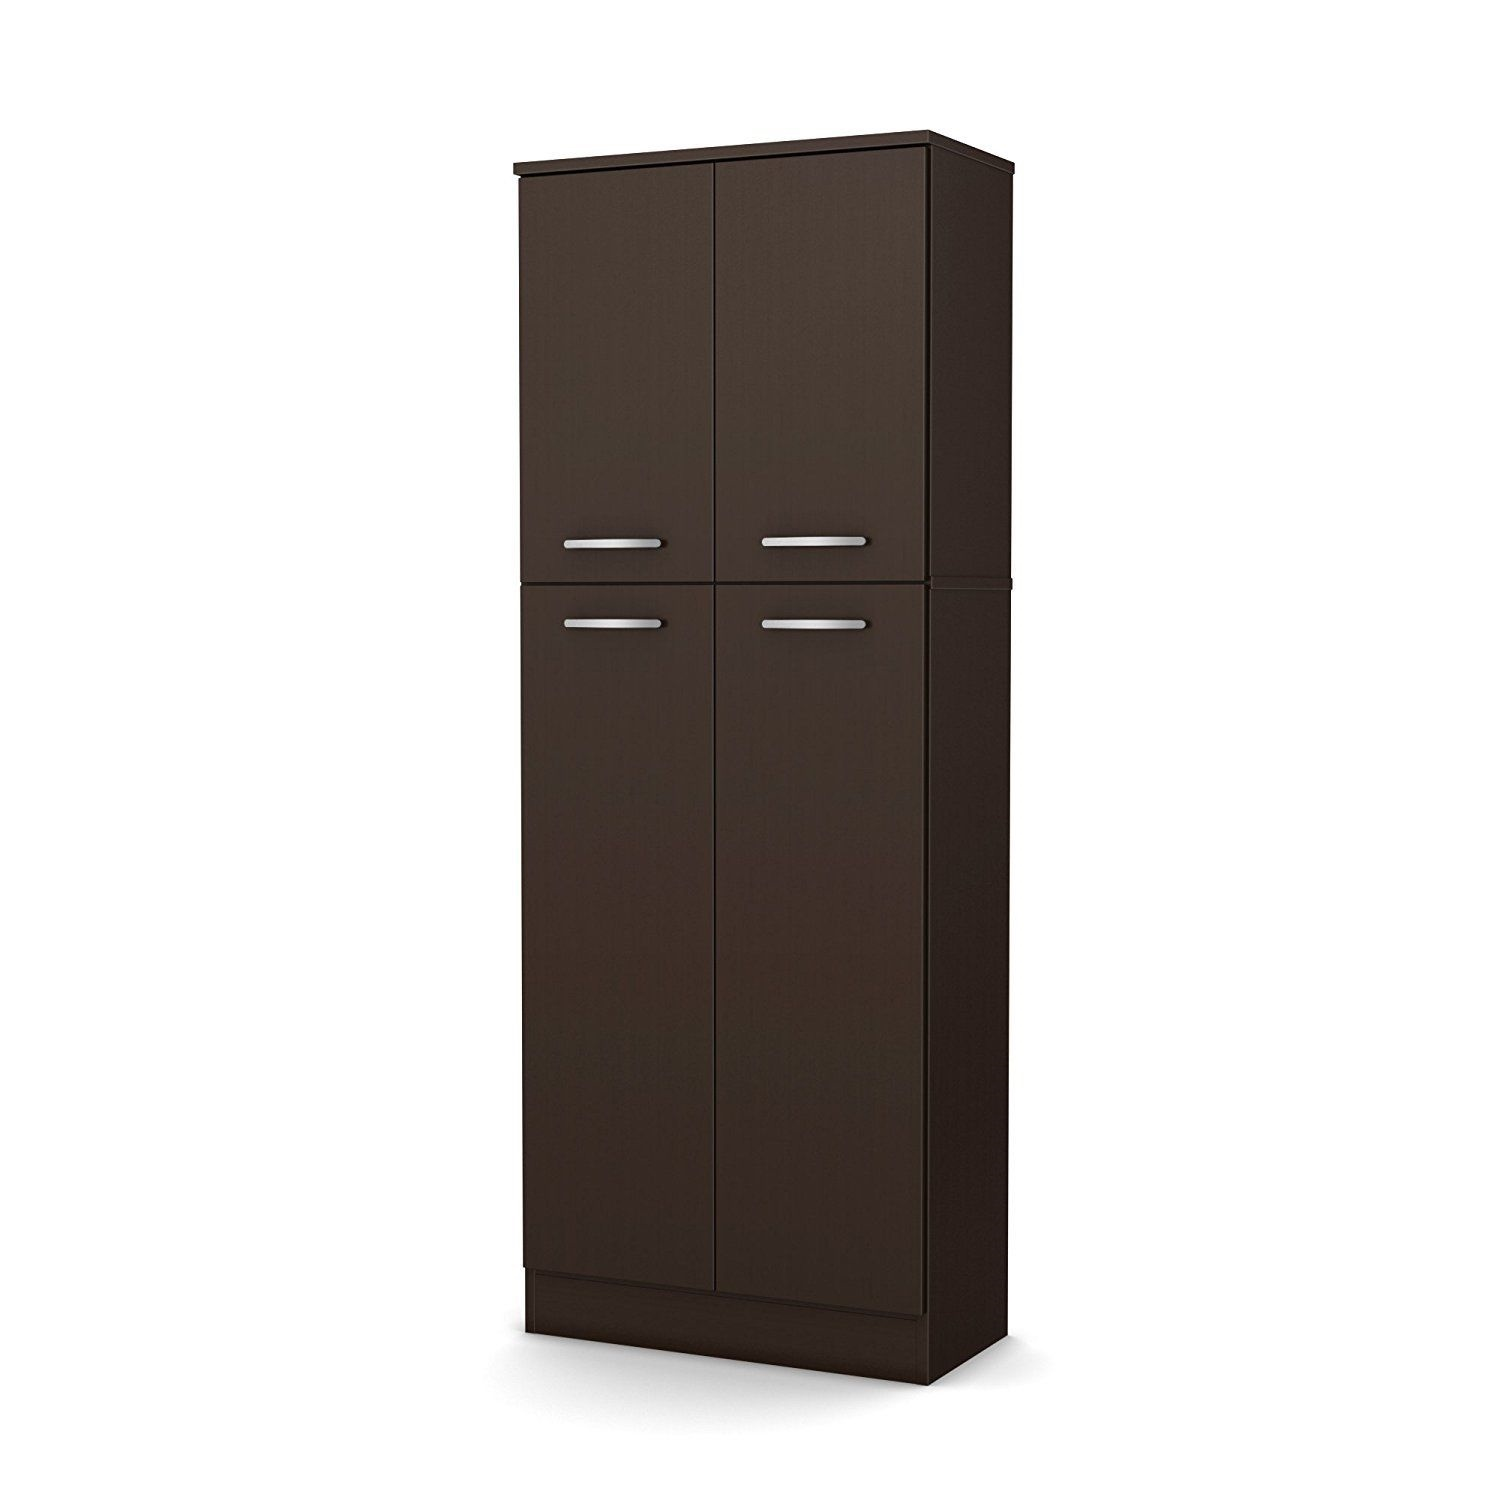 New pantry storage cabinet shelving laundry room closet for Kitchen closet cabinets